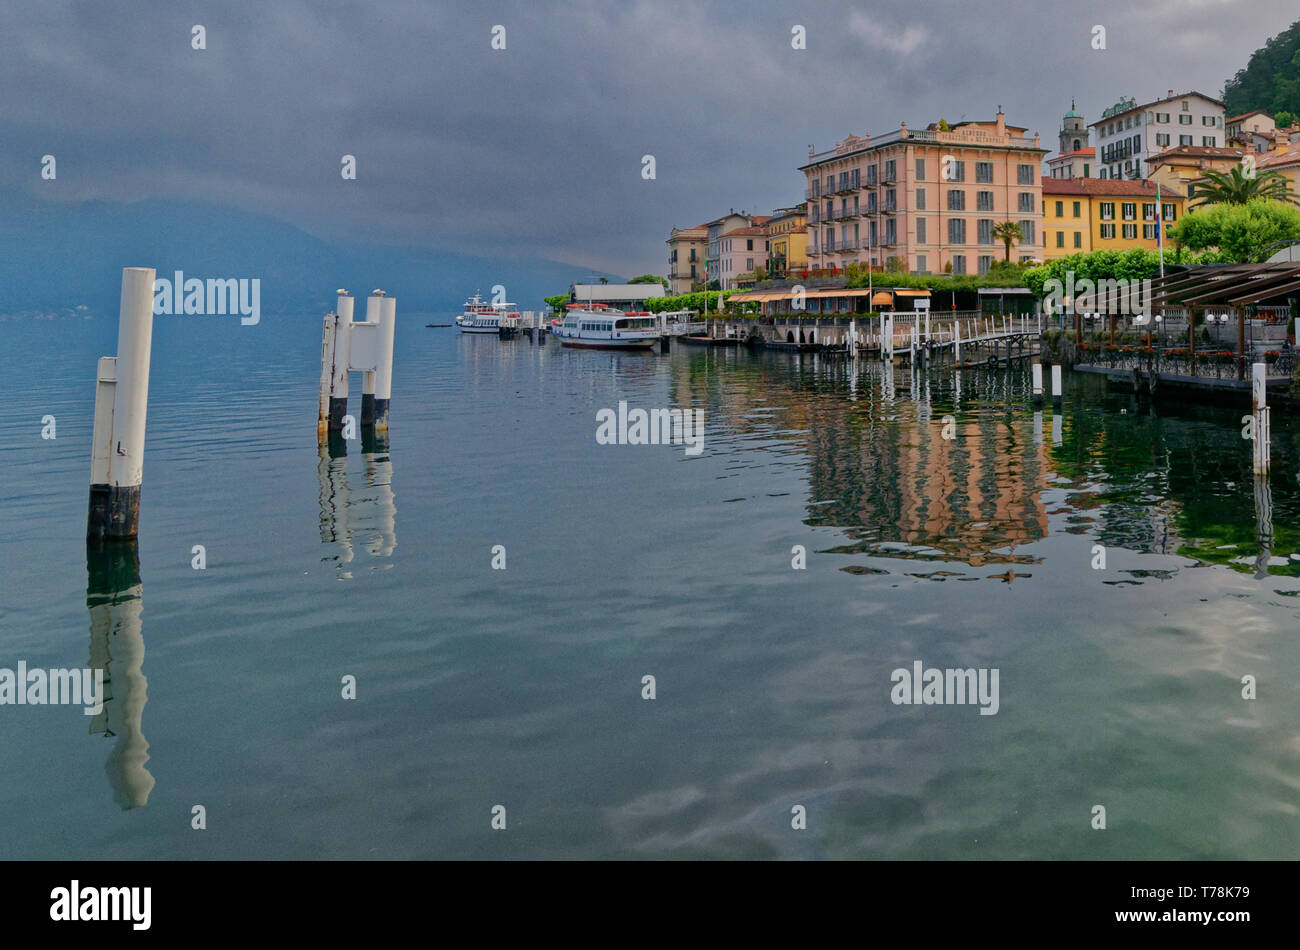 A view across the harbour to the Hotel Metropole and other colourful buildings of Bellagio, with reflections in the water of Lake Como - Stock Image